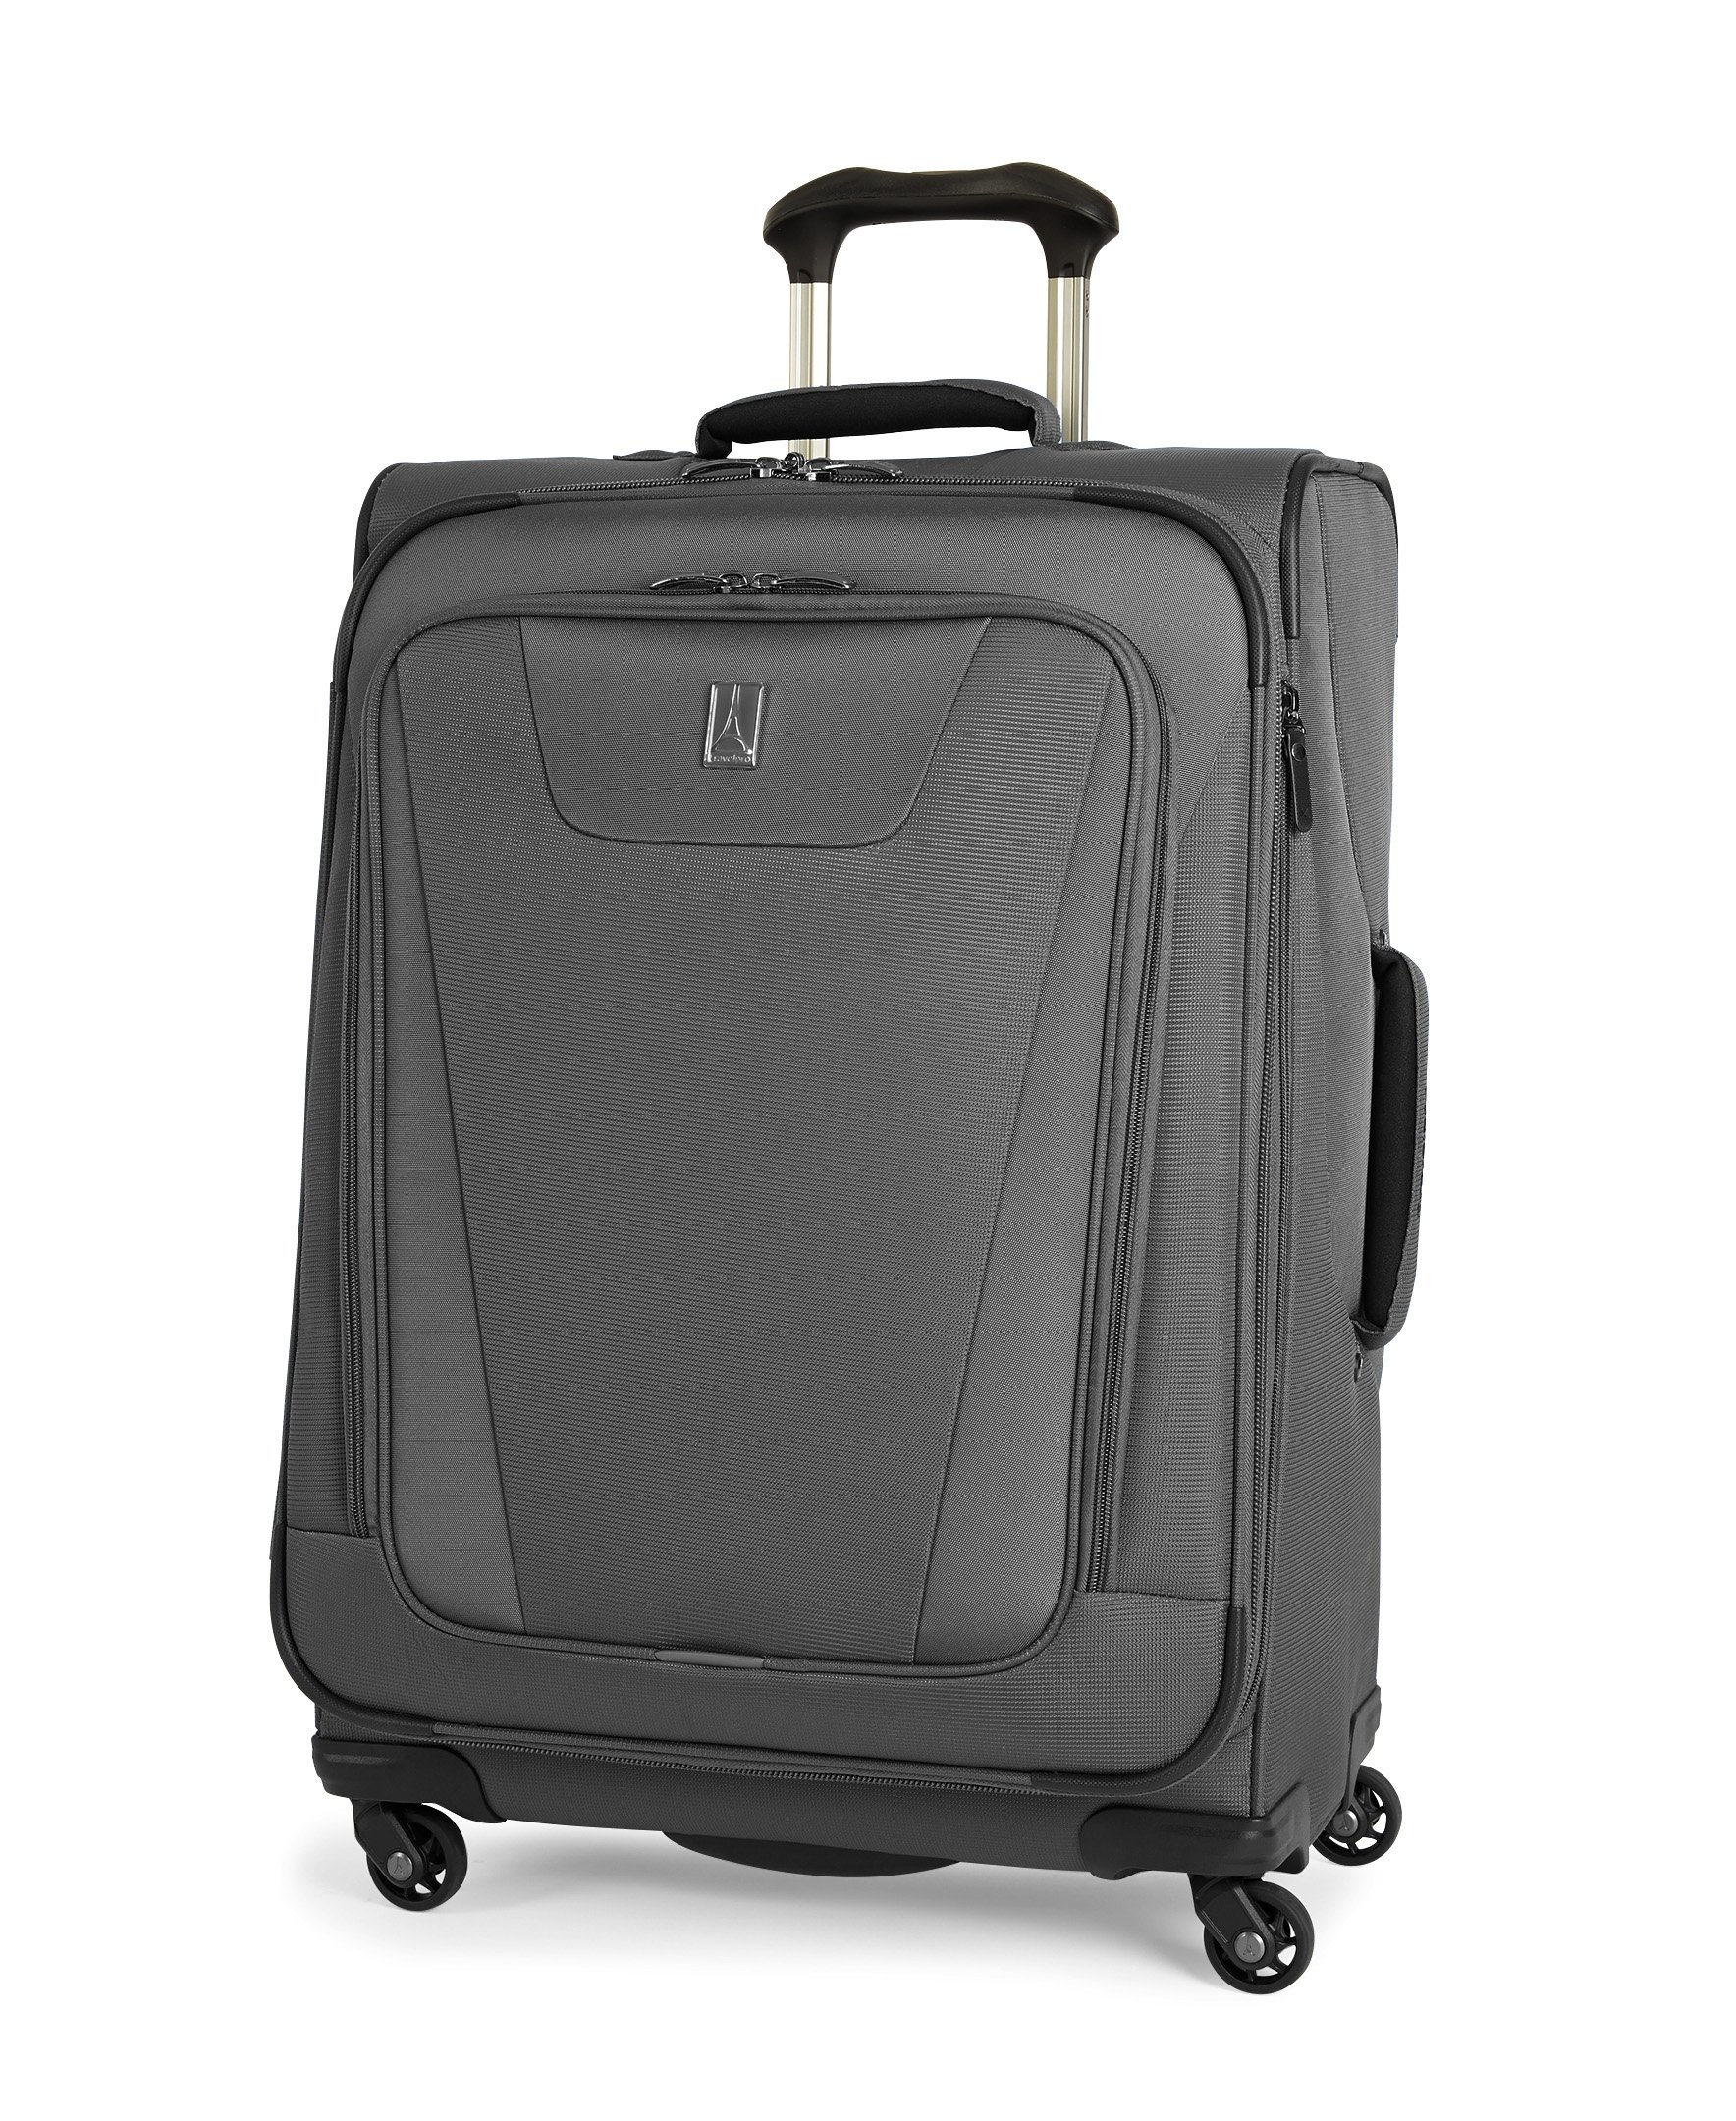 Travelpro Maxlite 4 25 Inch Expandable Spinner (One Size, Grey)